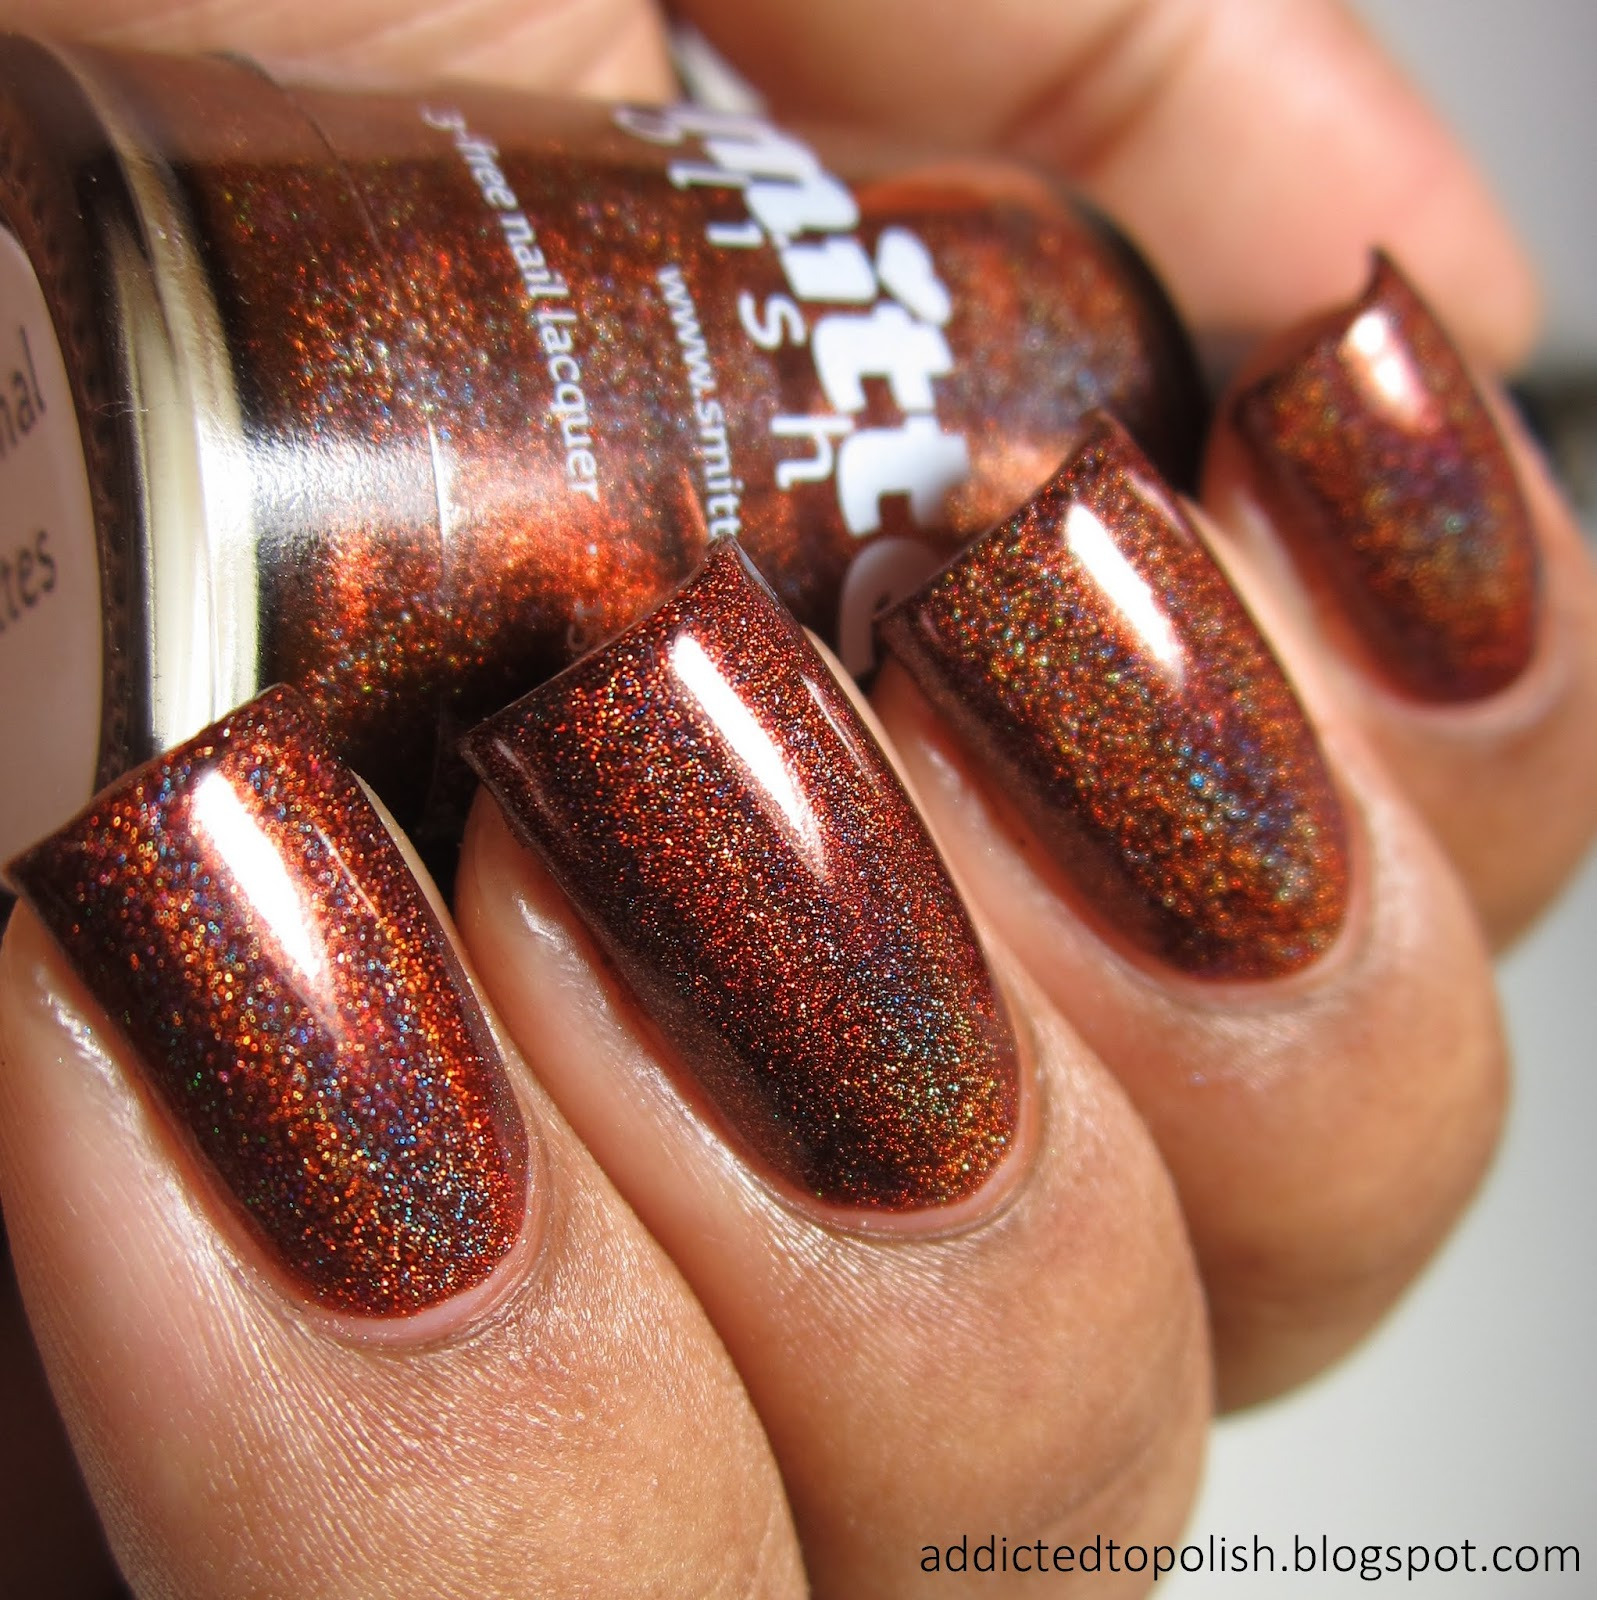 smitten-polish-seasonal-lattes-fall-2014